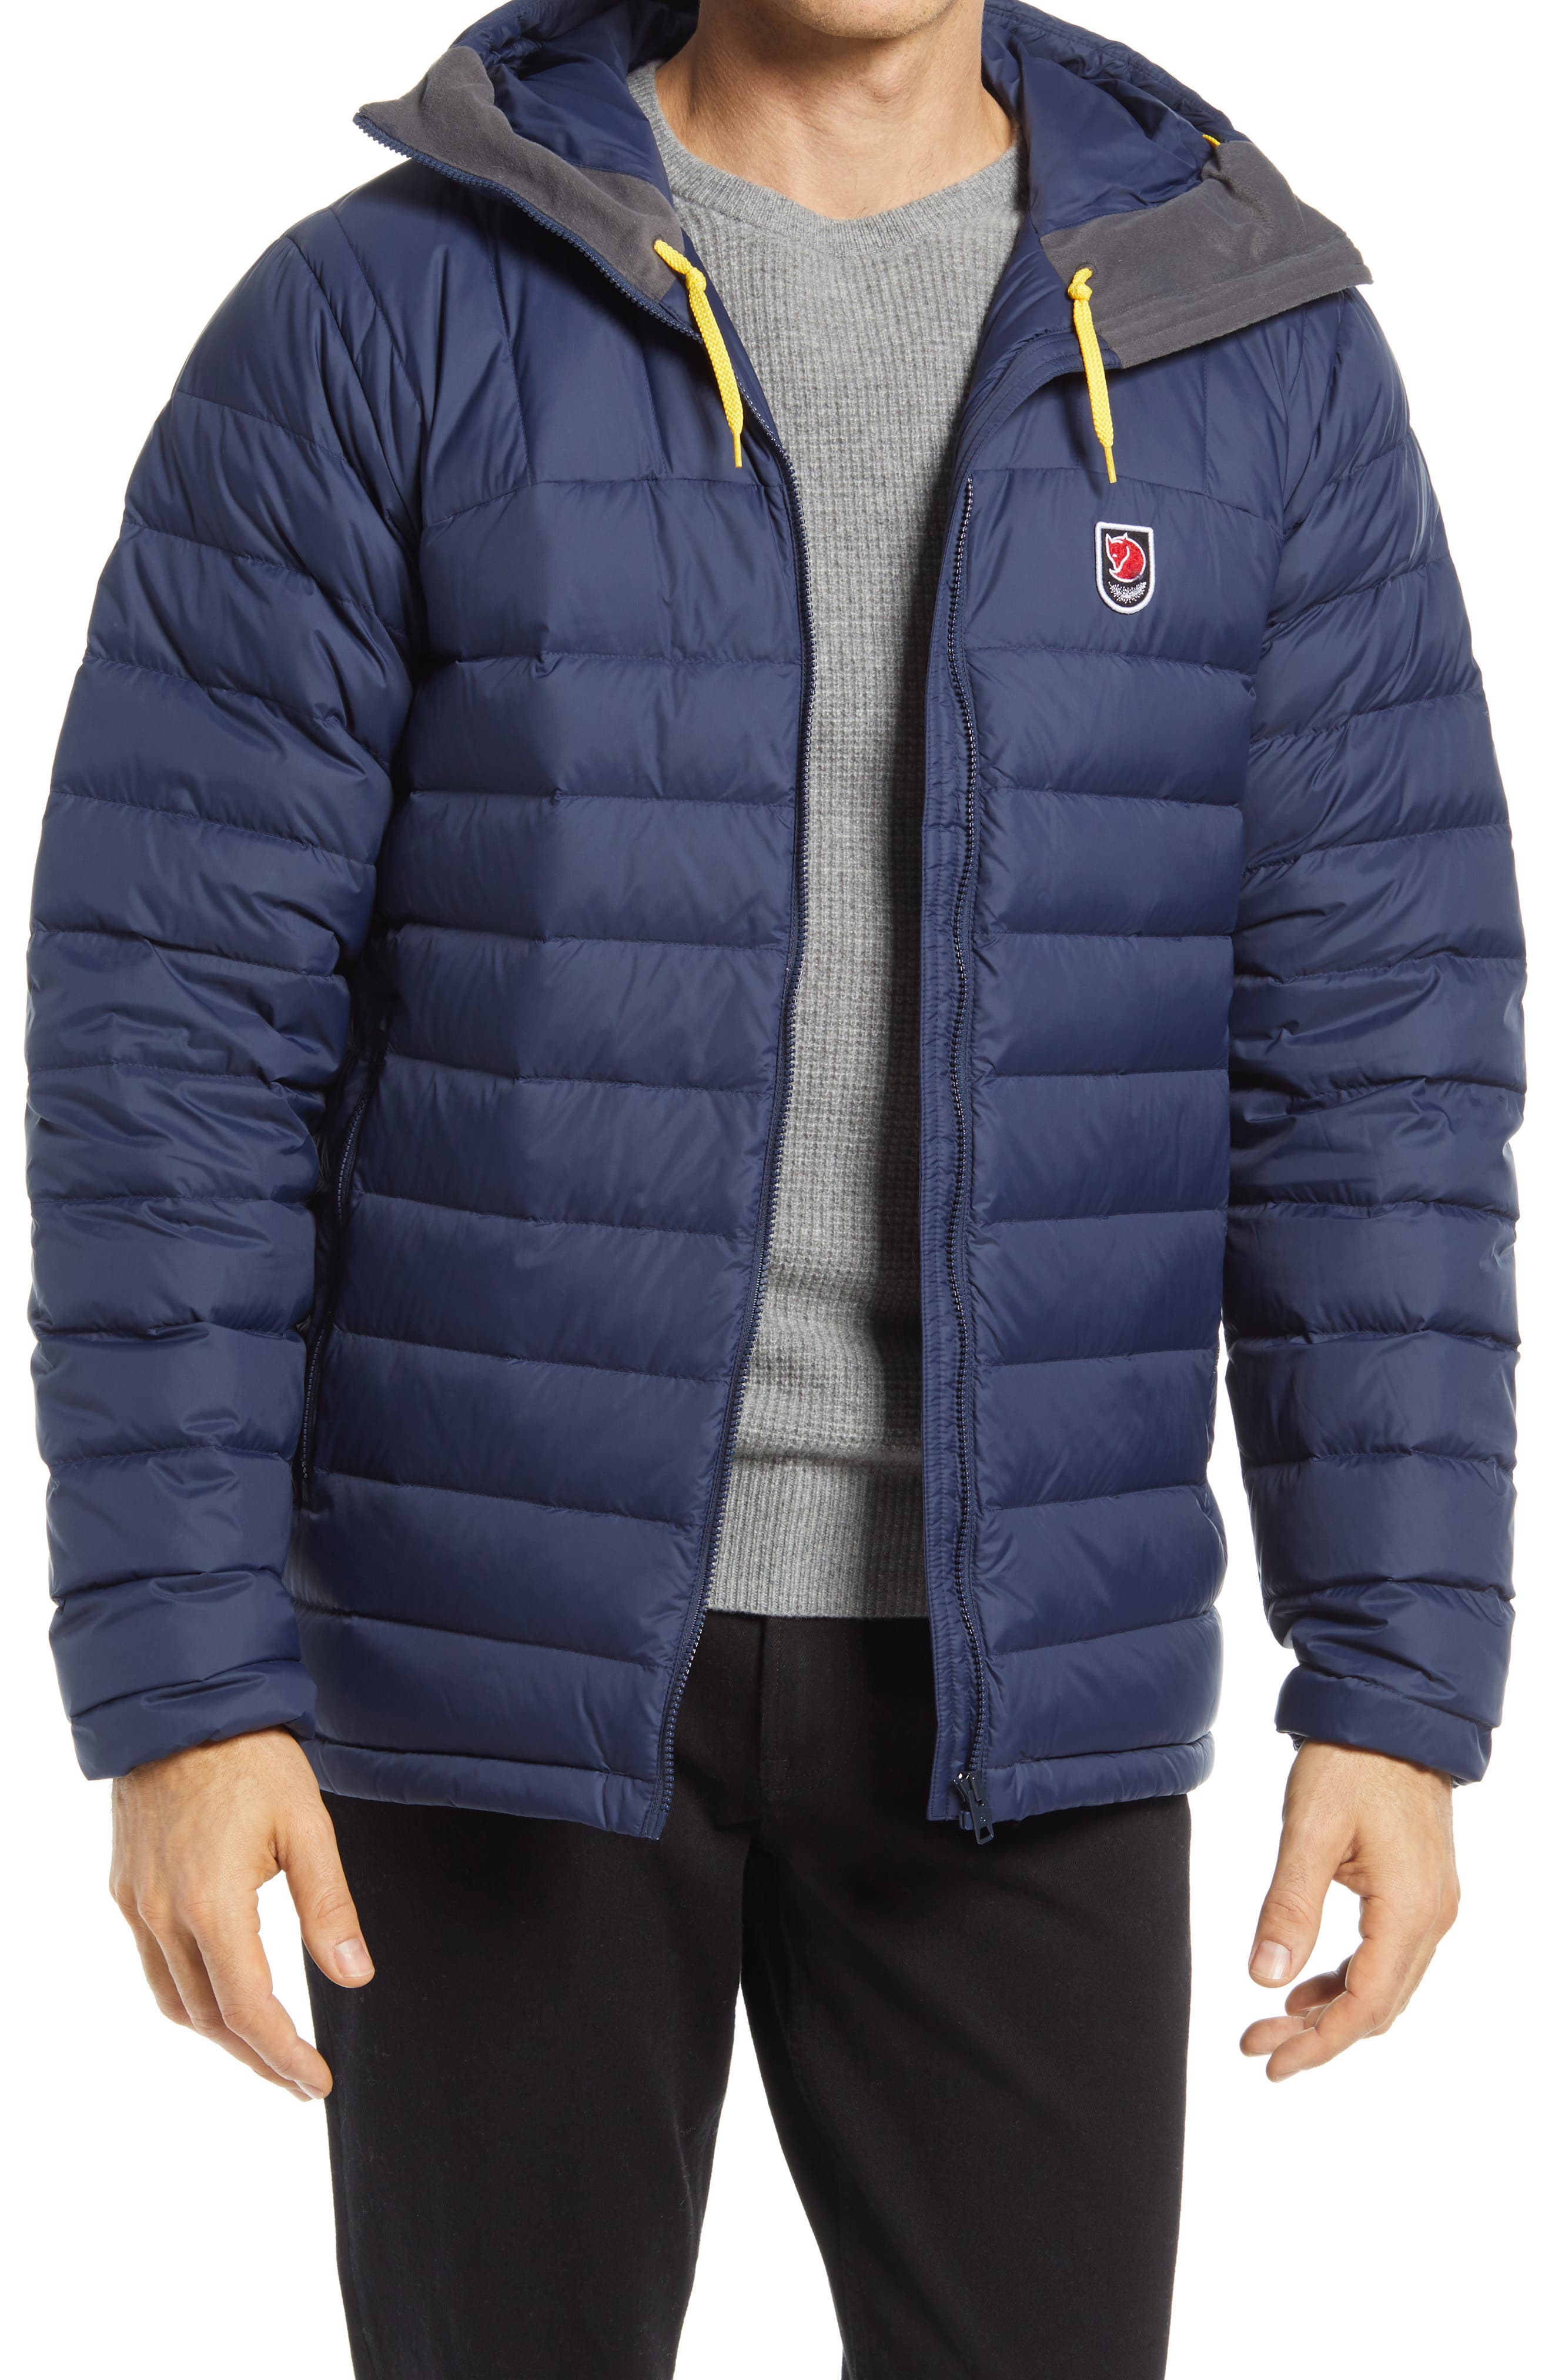 Expedition Pack Water Resistant 700 Fill Power Down Jacket